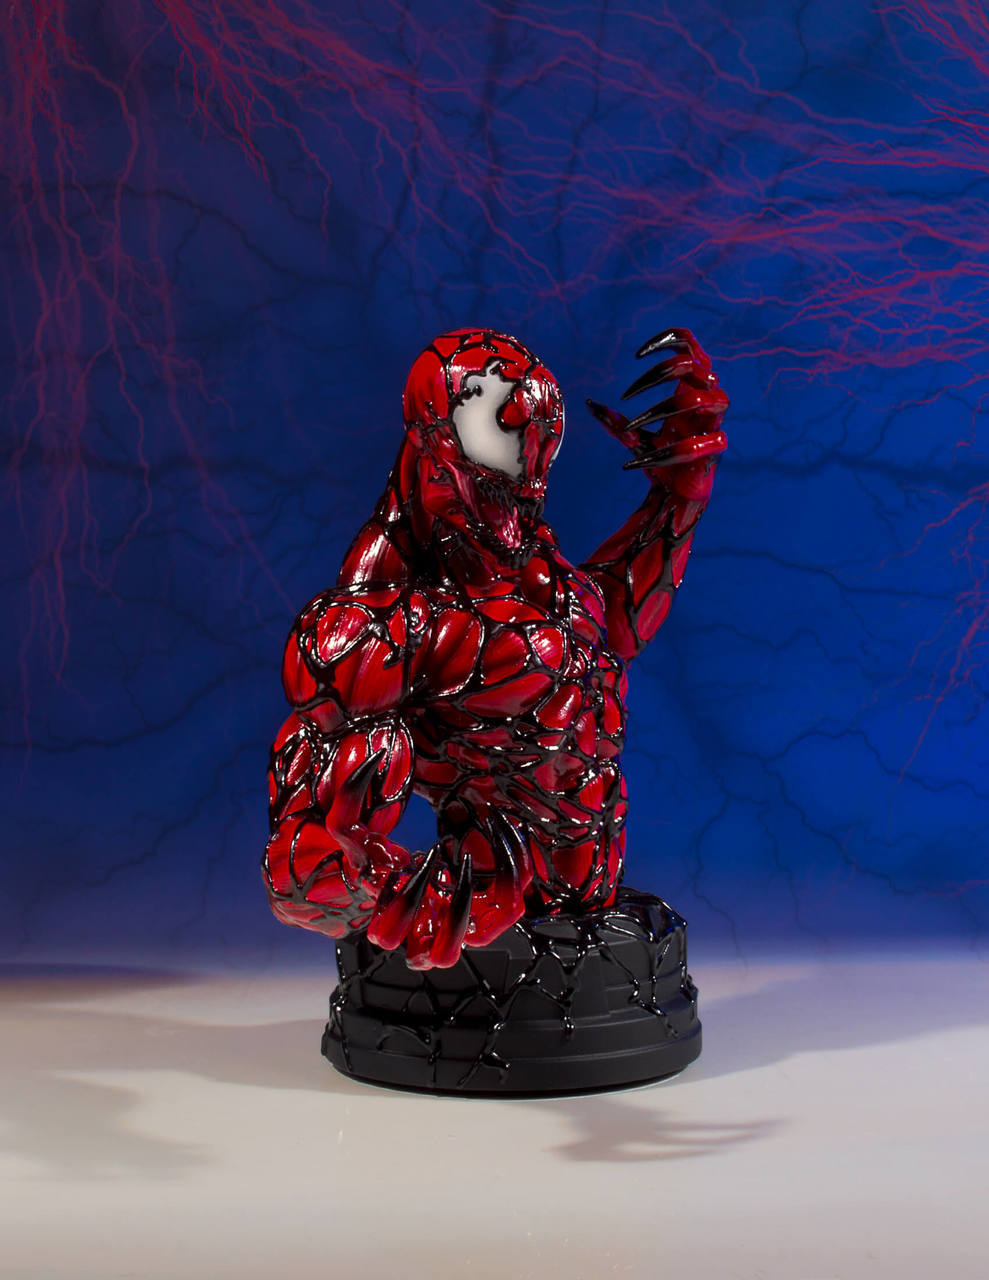 Sideshow Carnage Bust Images And Info - The Toyark - News  |Carnage Bust